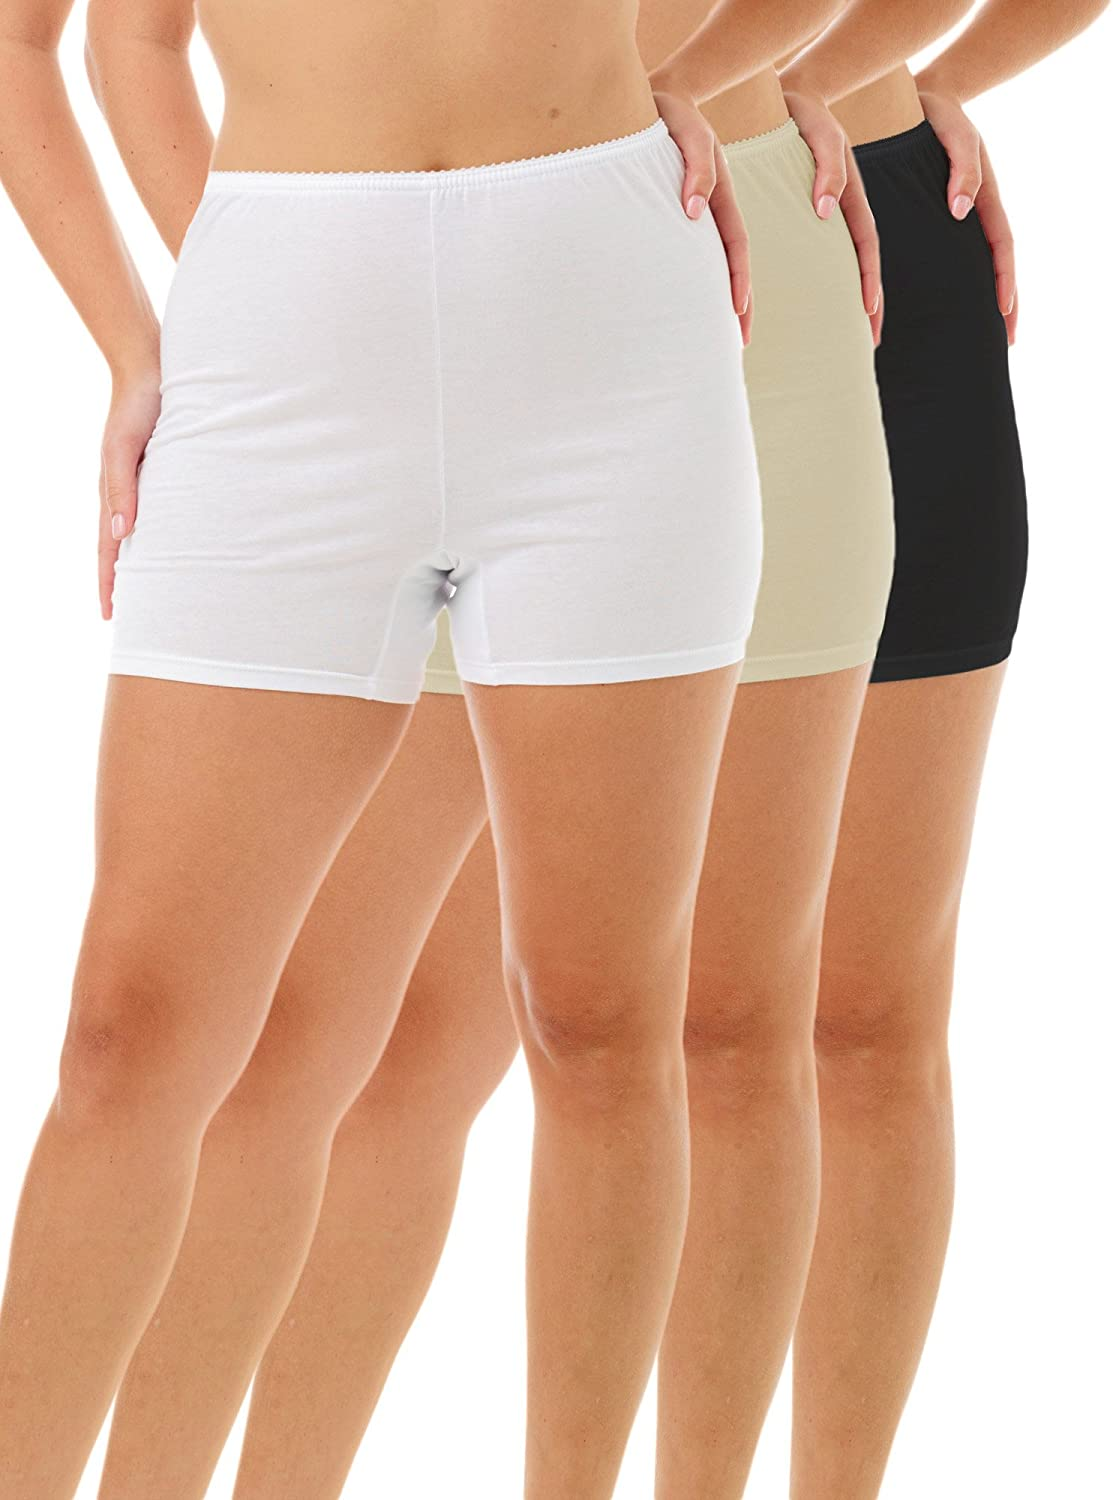 Underworks USA Womens 100/% Cotton Cuff Leg 5-inch Inseam Bloomers Pettipants 3-Pack